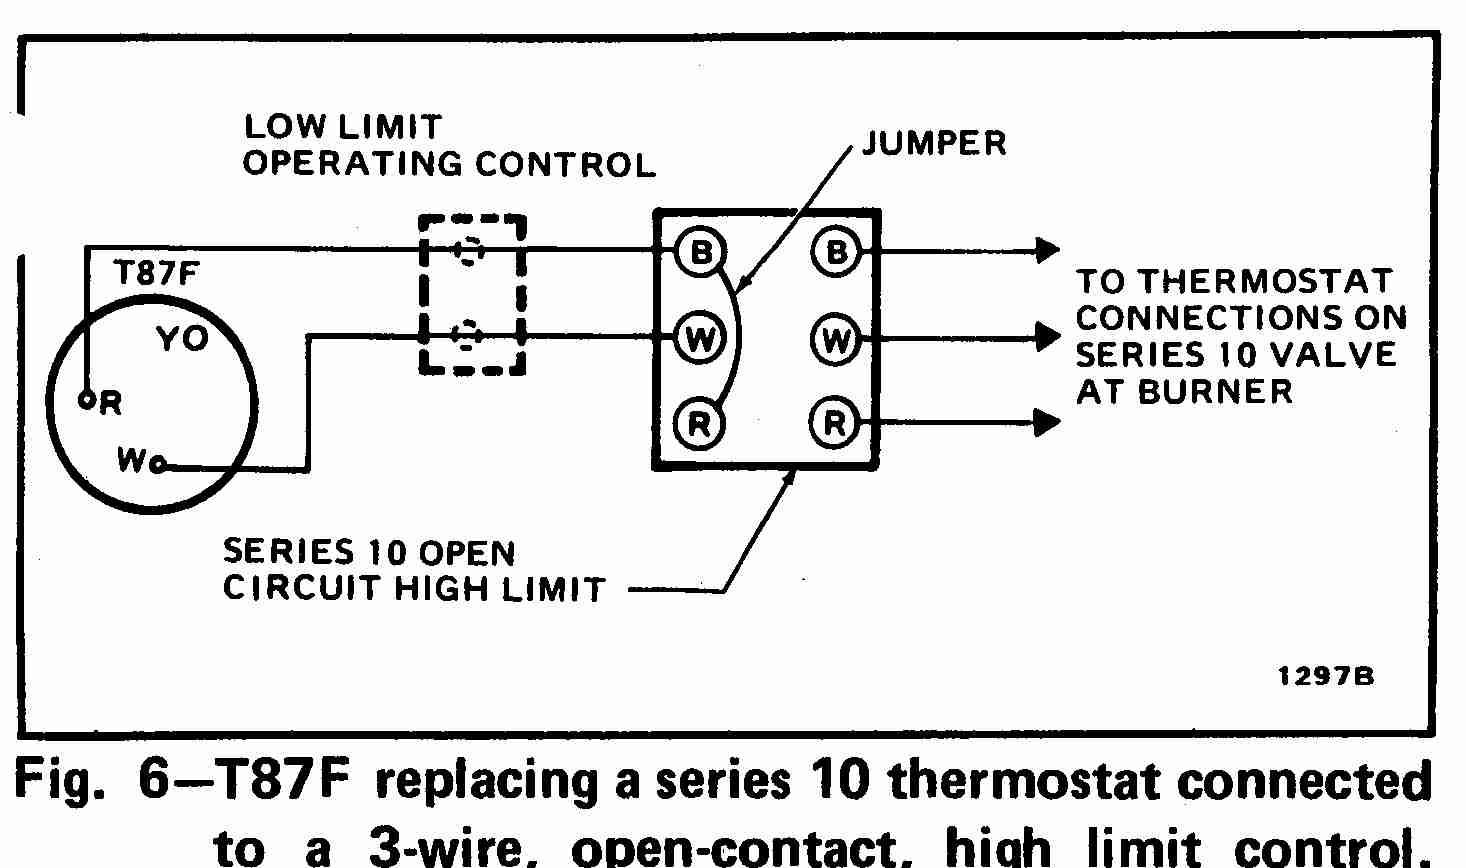 TT_T87F_0002_3WHL_DJF room thermostat wiring diagrams for hvac systems 2 wire thermostat wiring diagram heat only at gsmportal.co